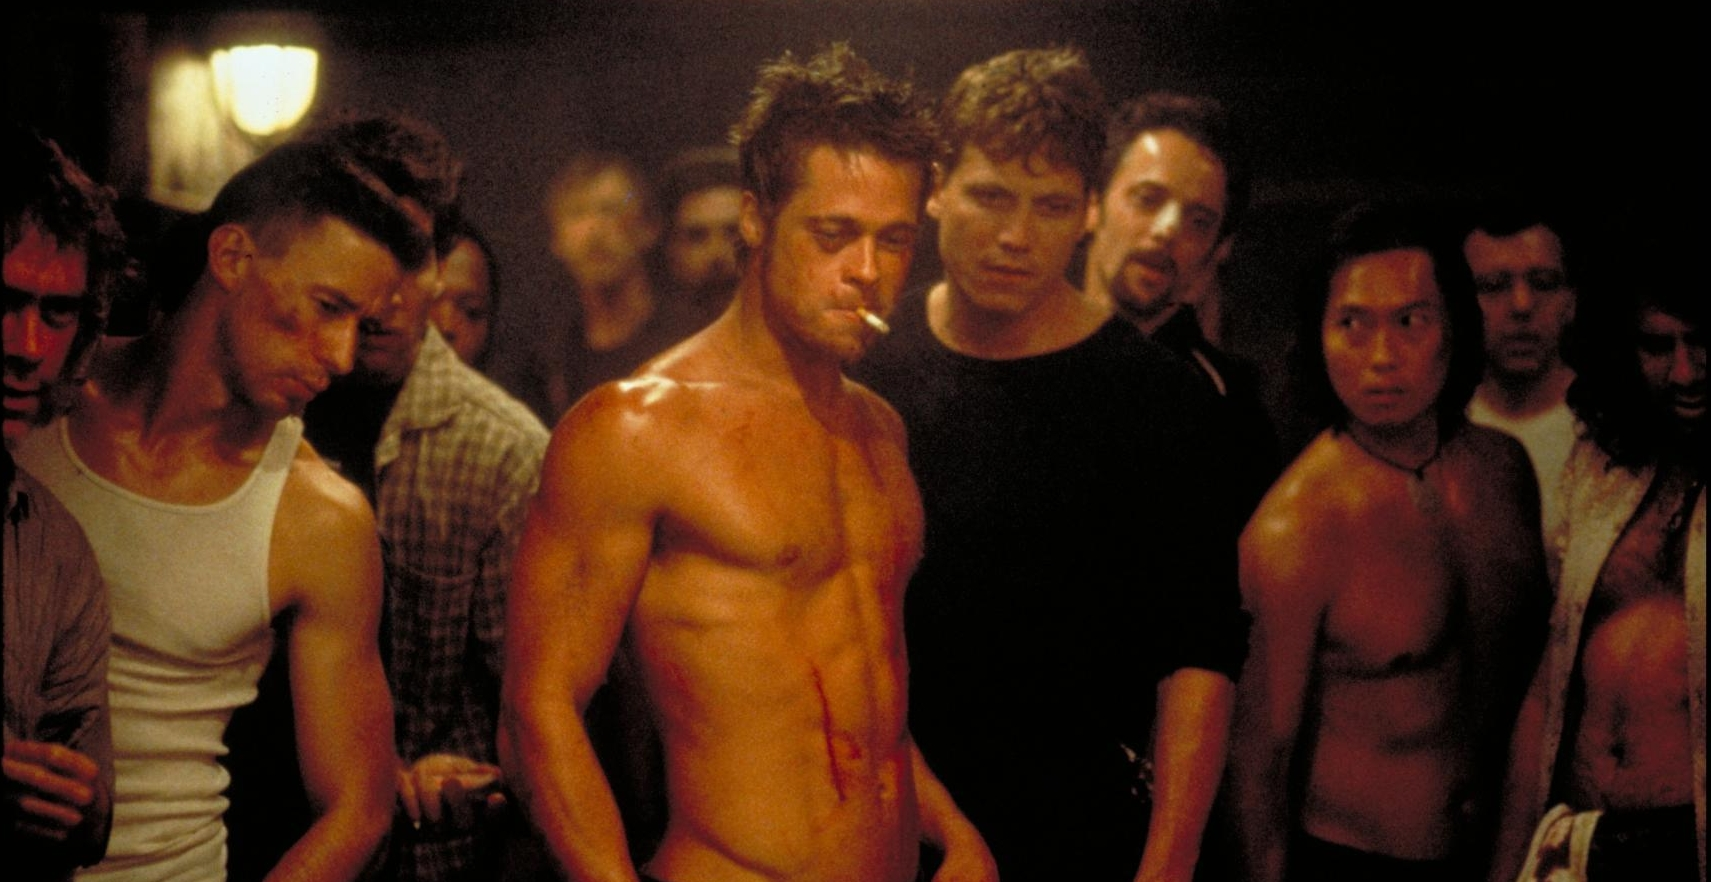 tyler durden Villains Who Became More Popular Than Their Heroes